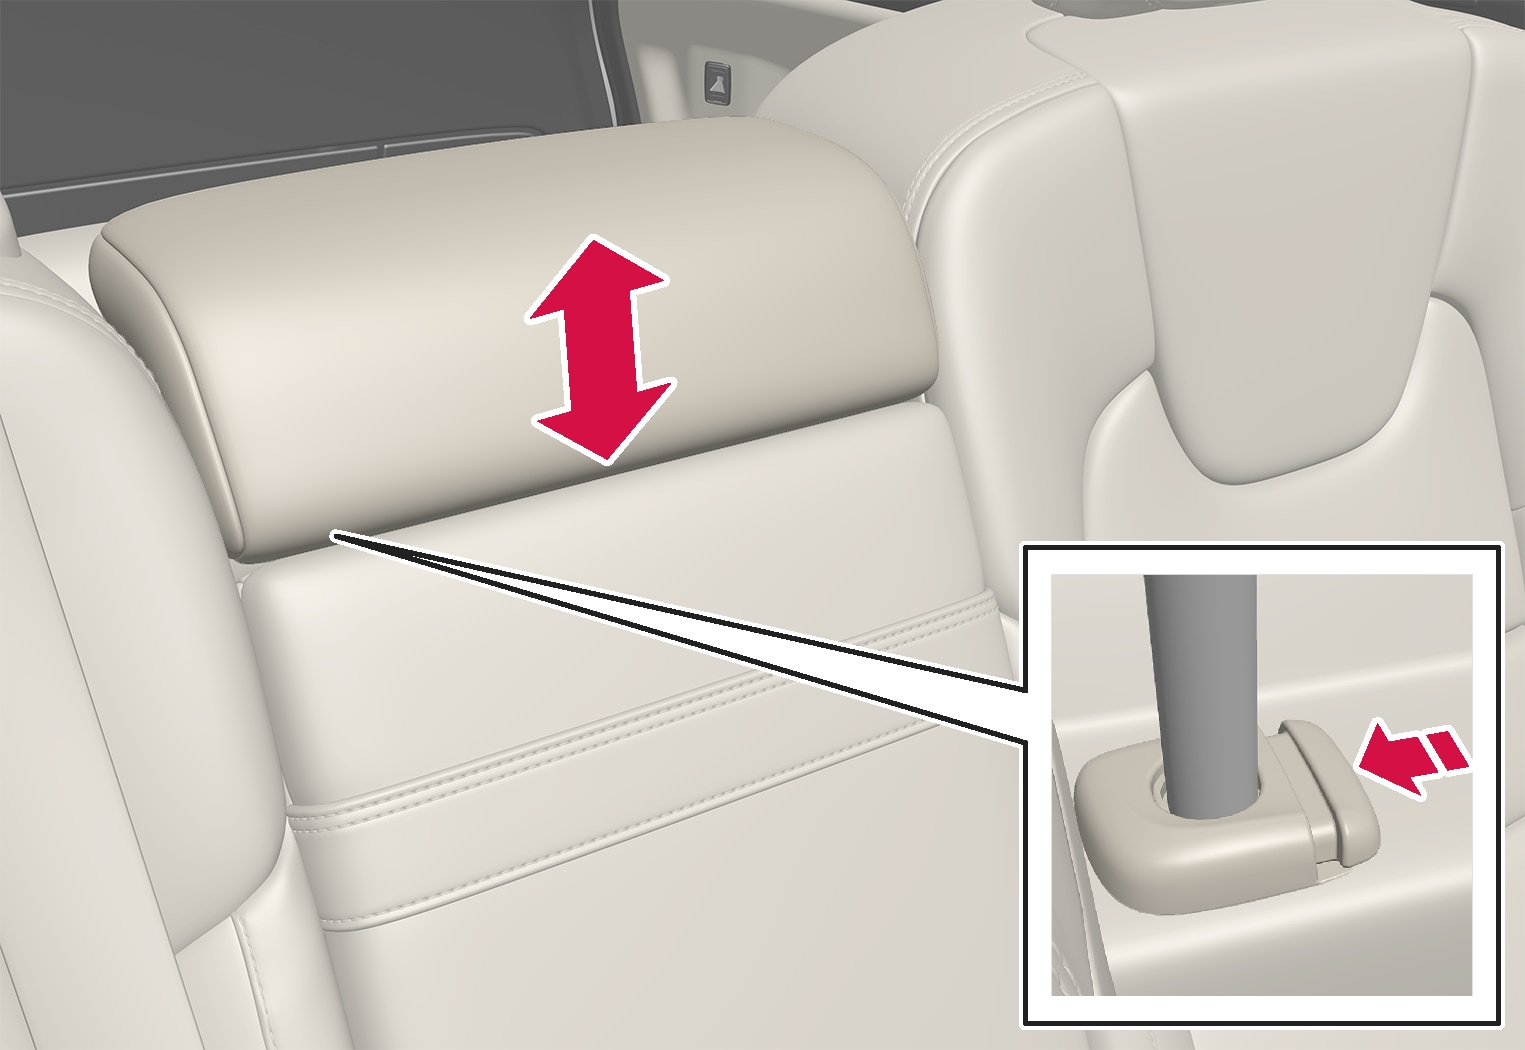 P5-1817-V60-Rear seat-Adjust headrest center